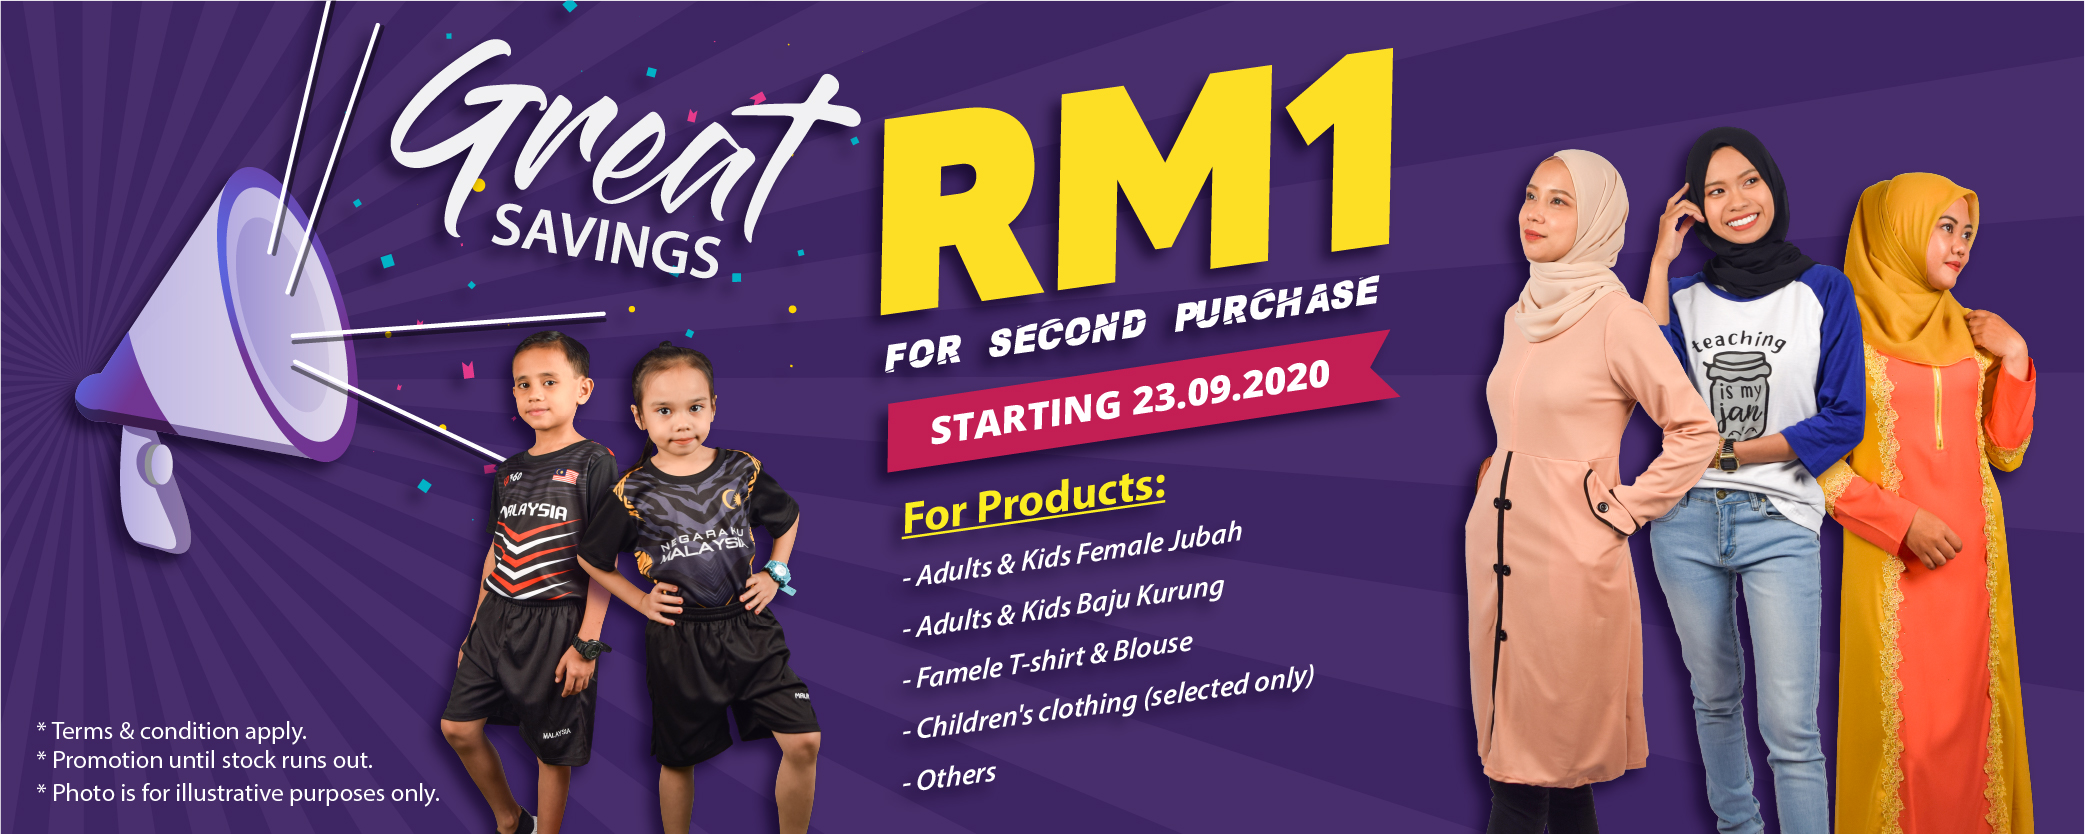 Clothing Promotion RM1 EN